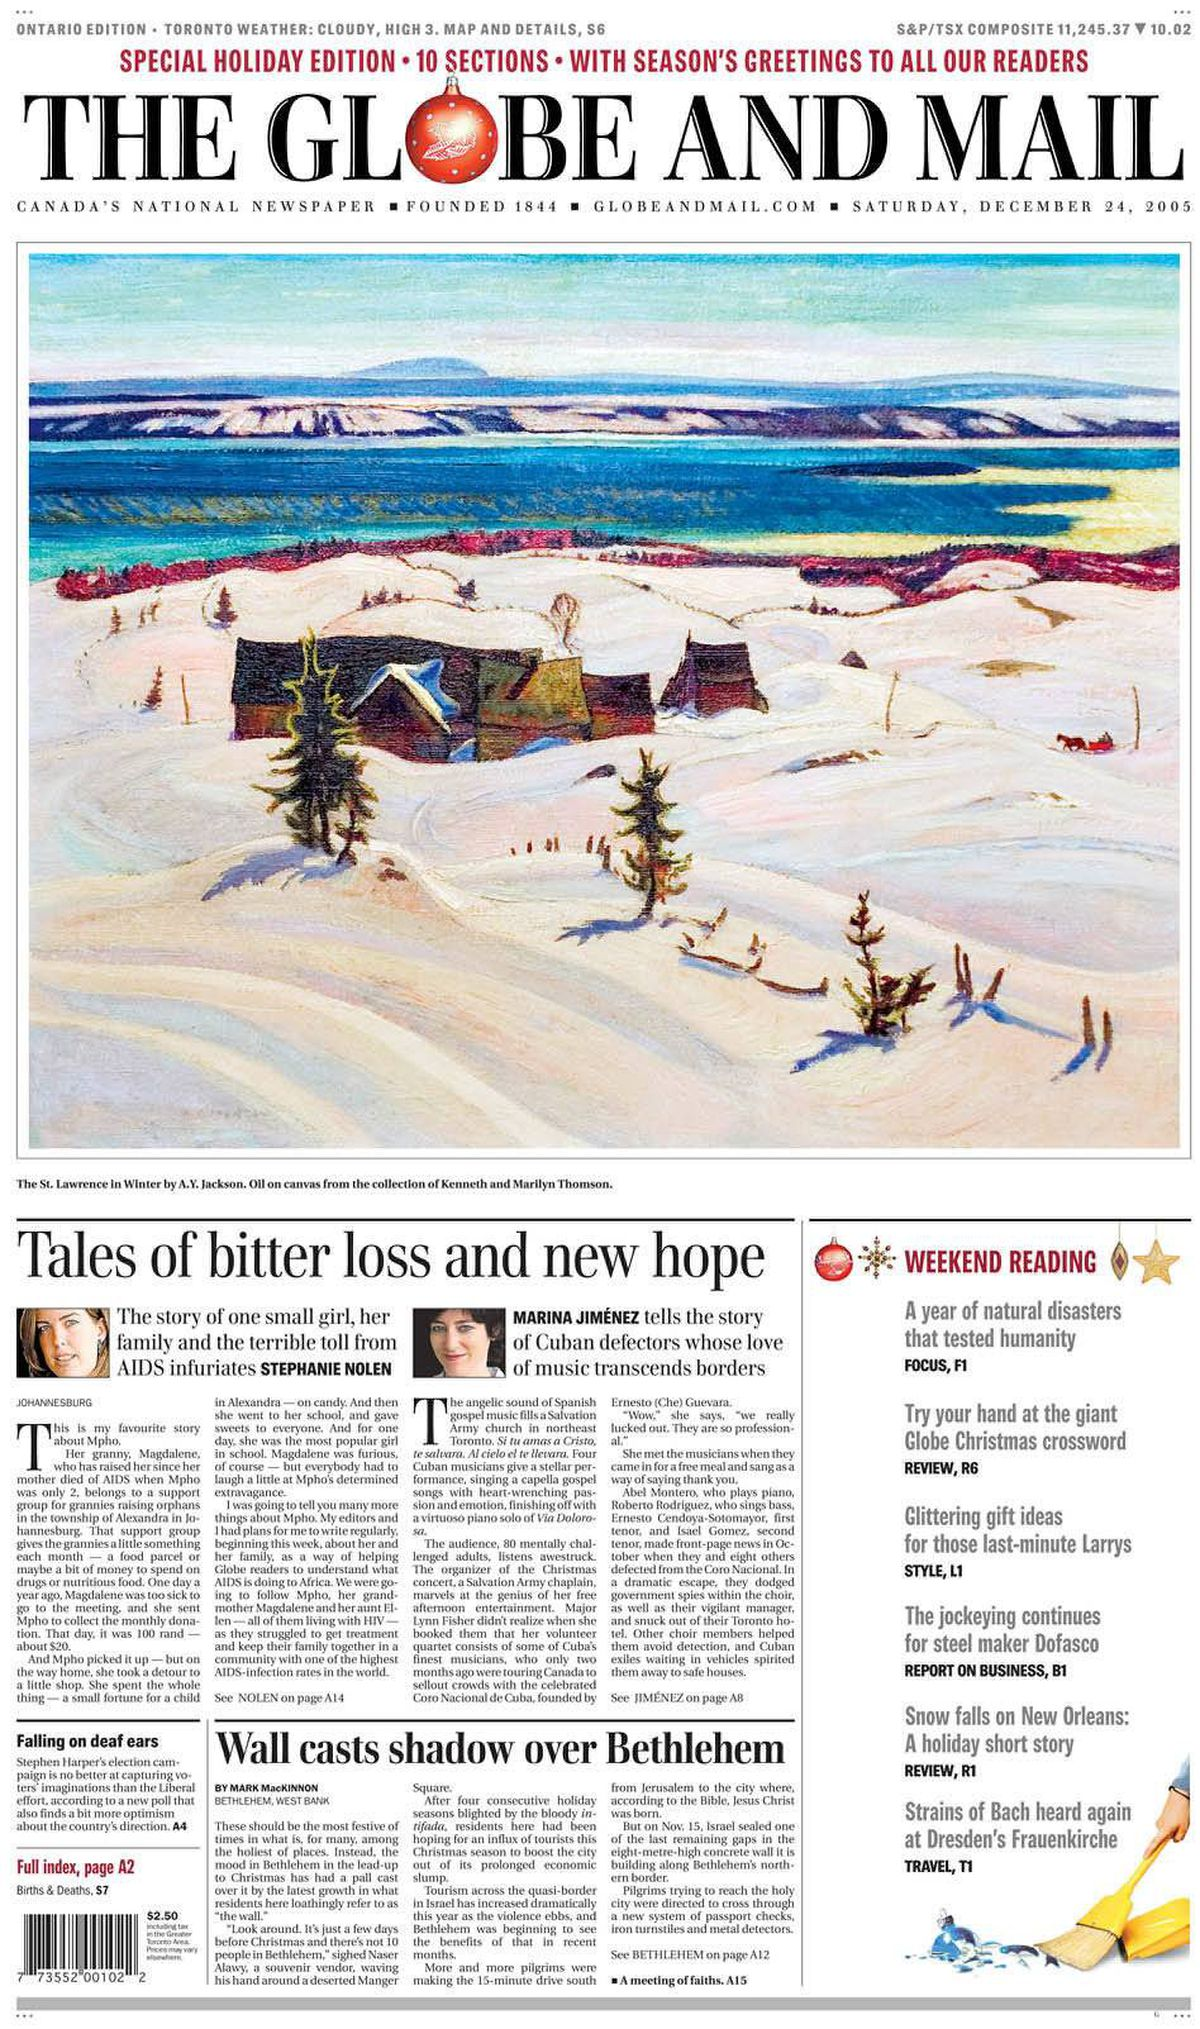 Cover of The Globe and Mail, Dec. 24, 2005